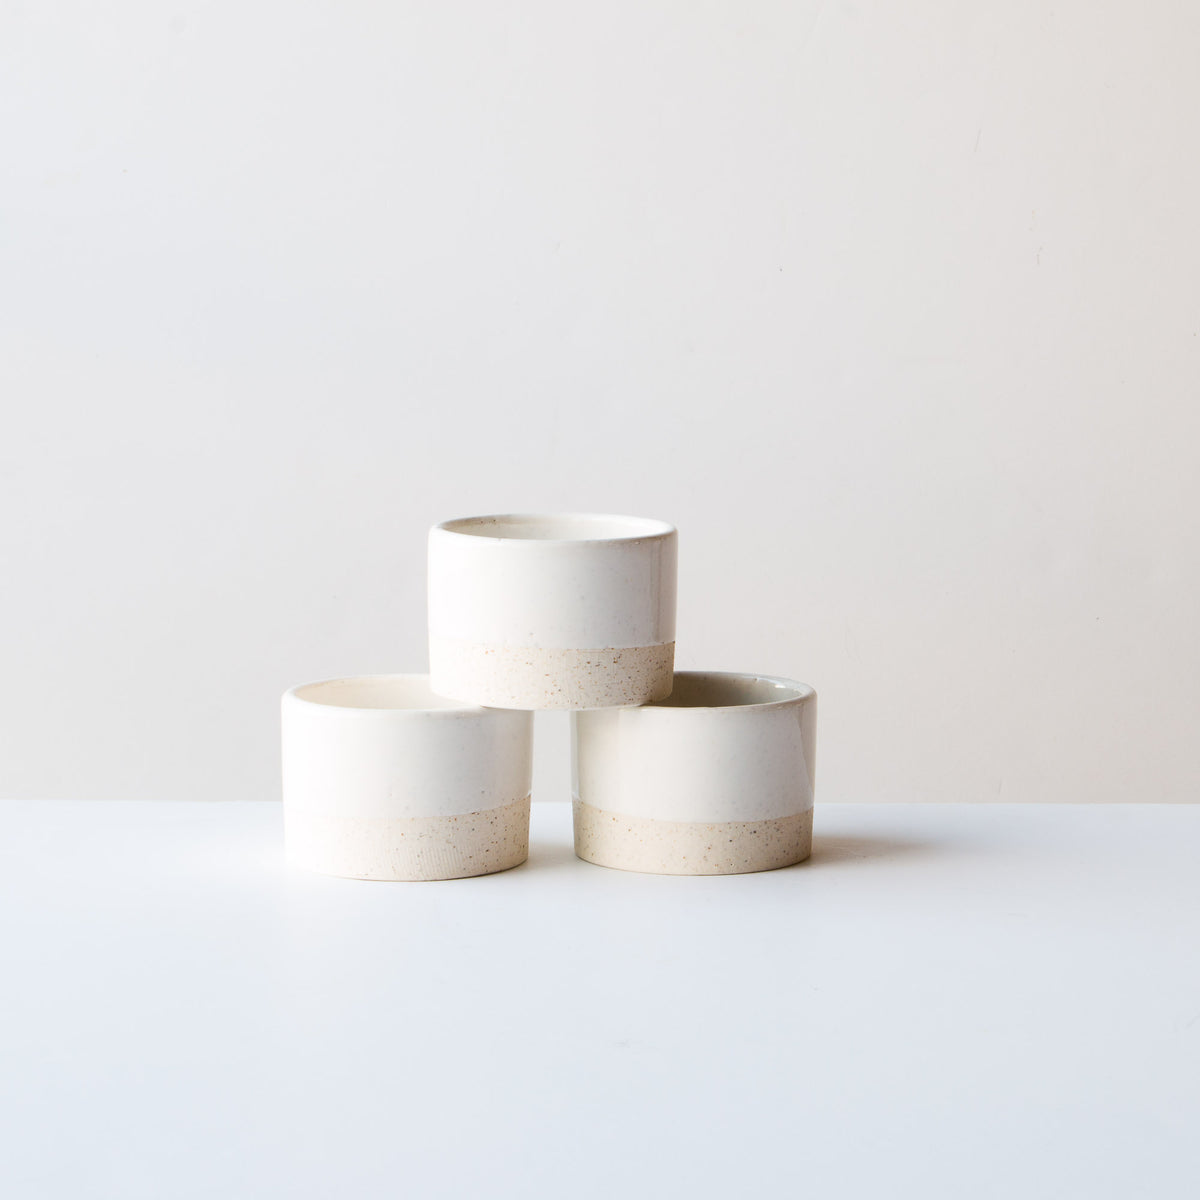 Three Oatmeal Clay - Soft White Glaze - 6 oz / 200 ml Handmade Ceramic Ramekin - Made in Canada - Shop Online